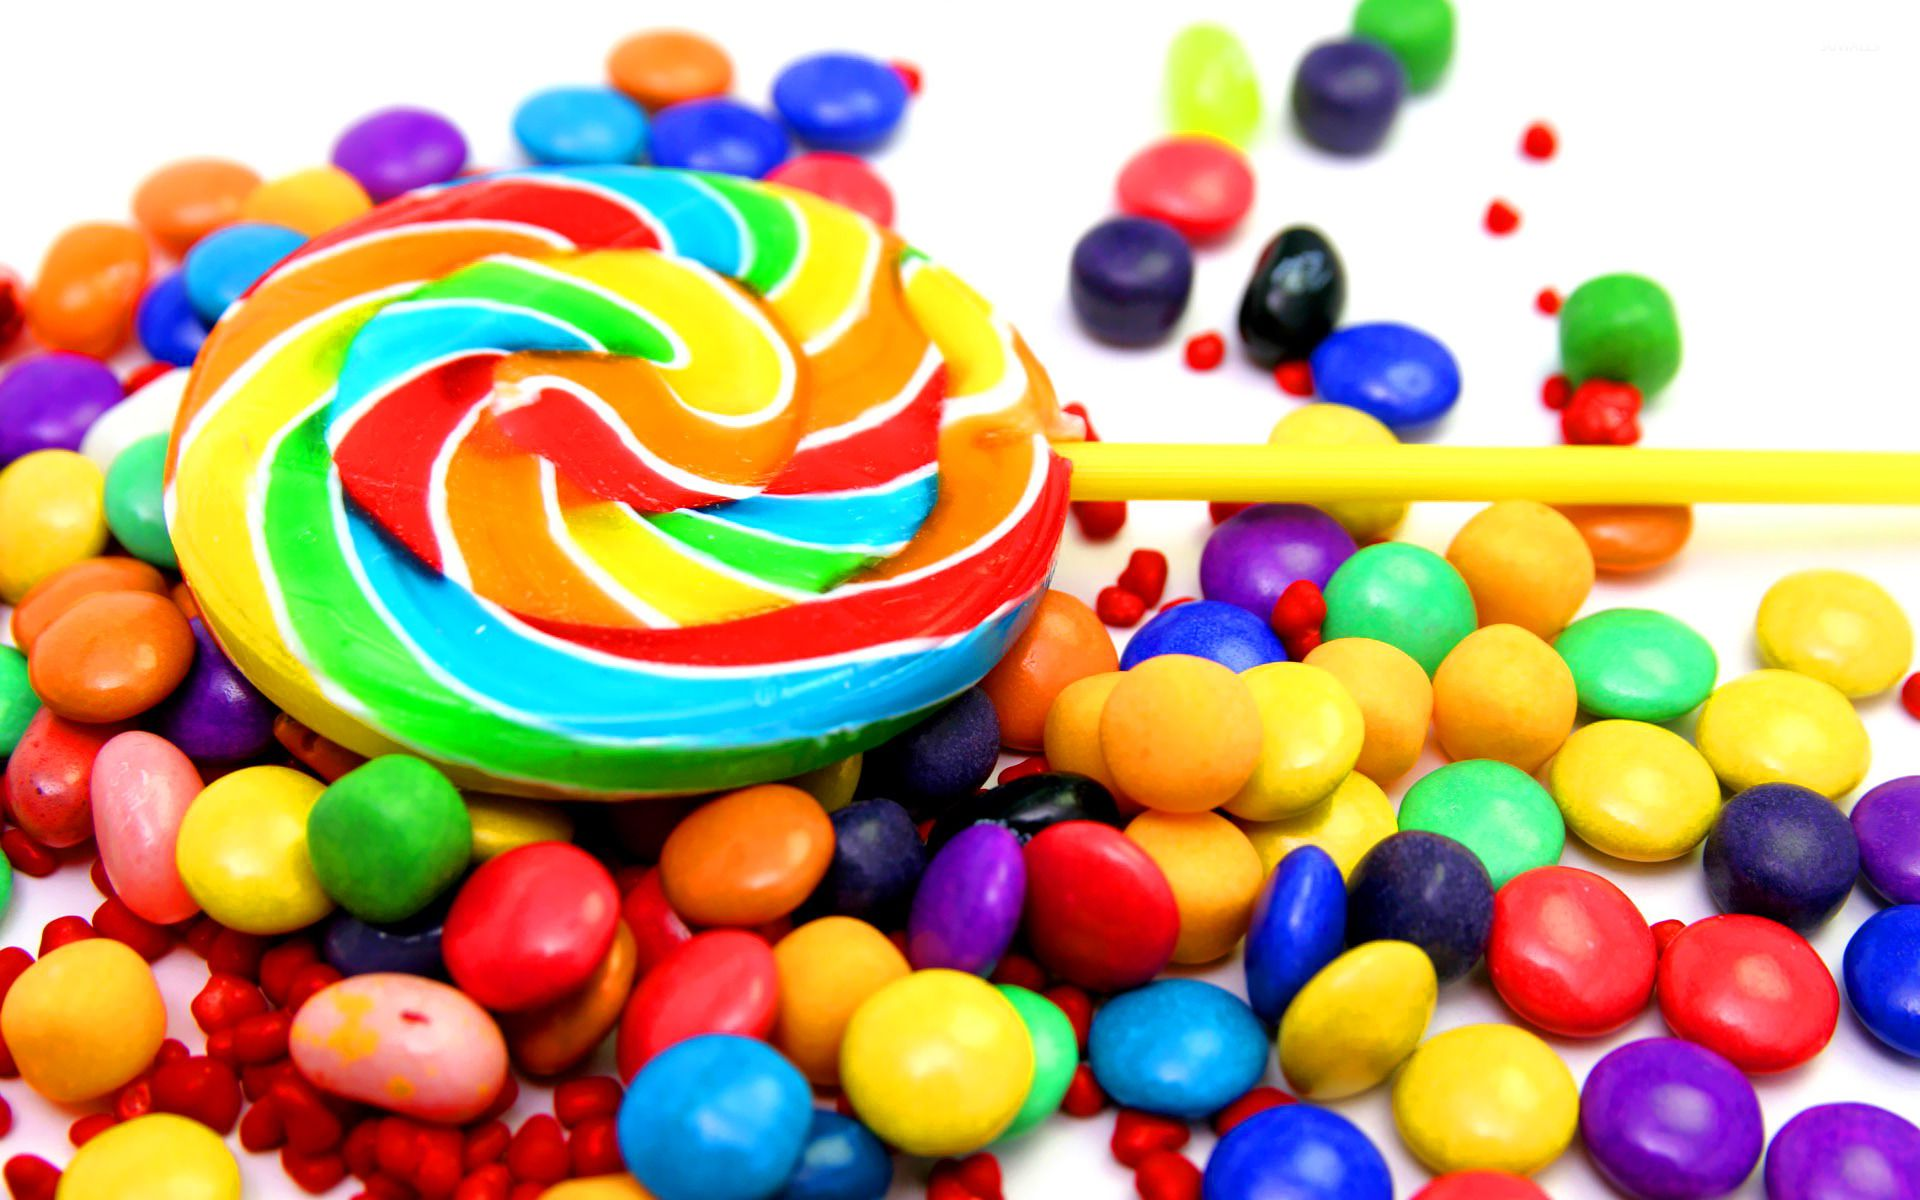 Colorful Candy Wallpapers   Top Colorful Candy Backgrounds 1920x1200